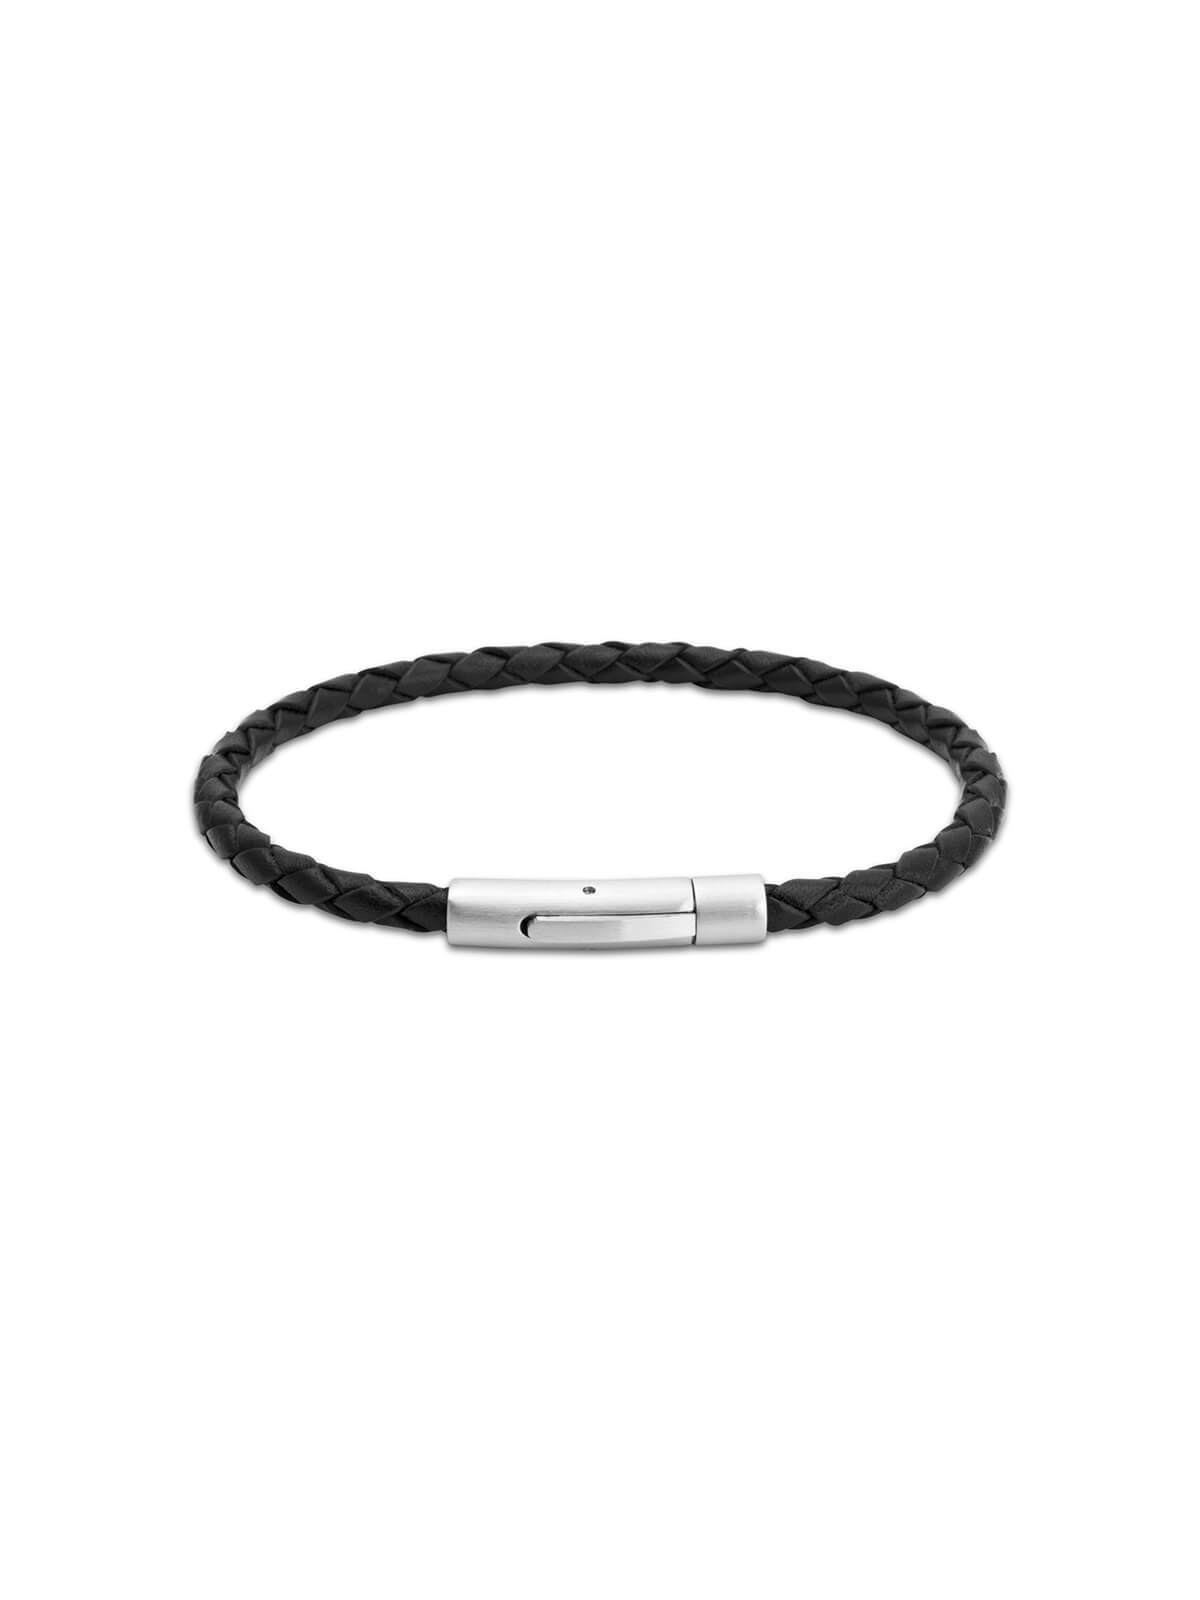 Unique & Co. 21cm Black Leather Bracelet A41BL/21CM